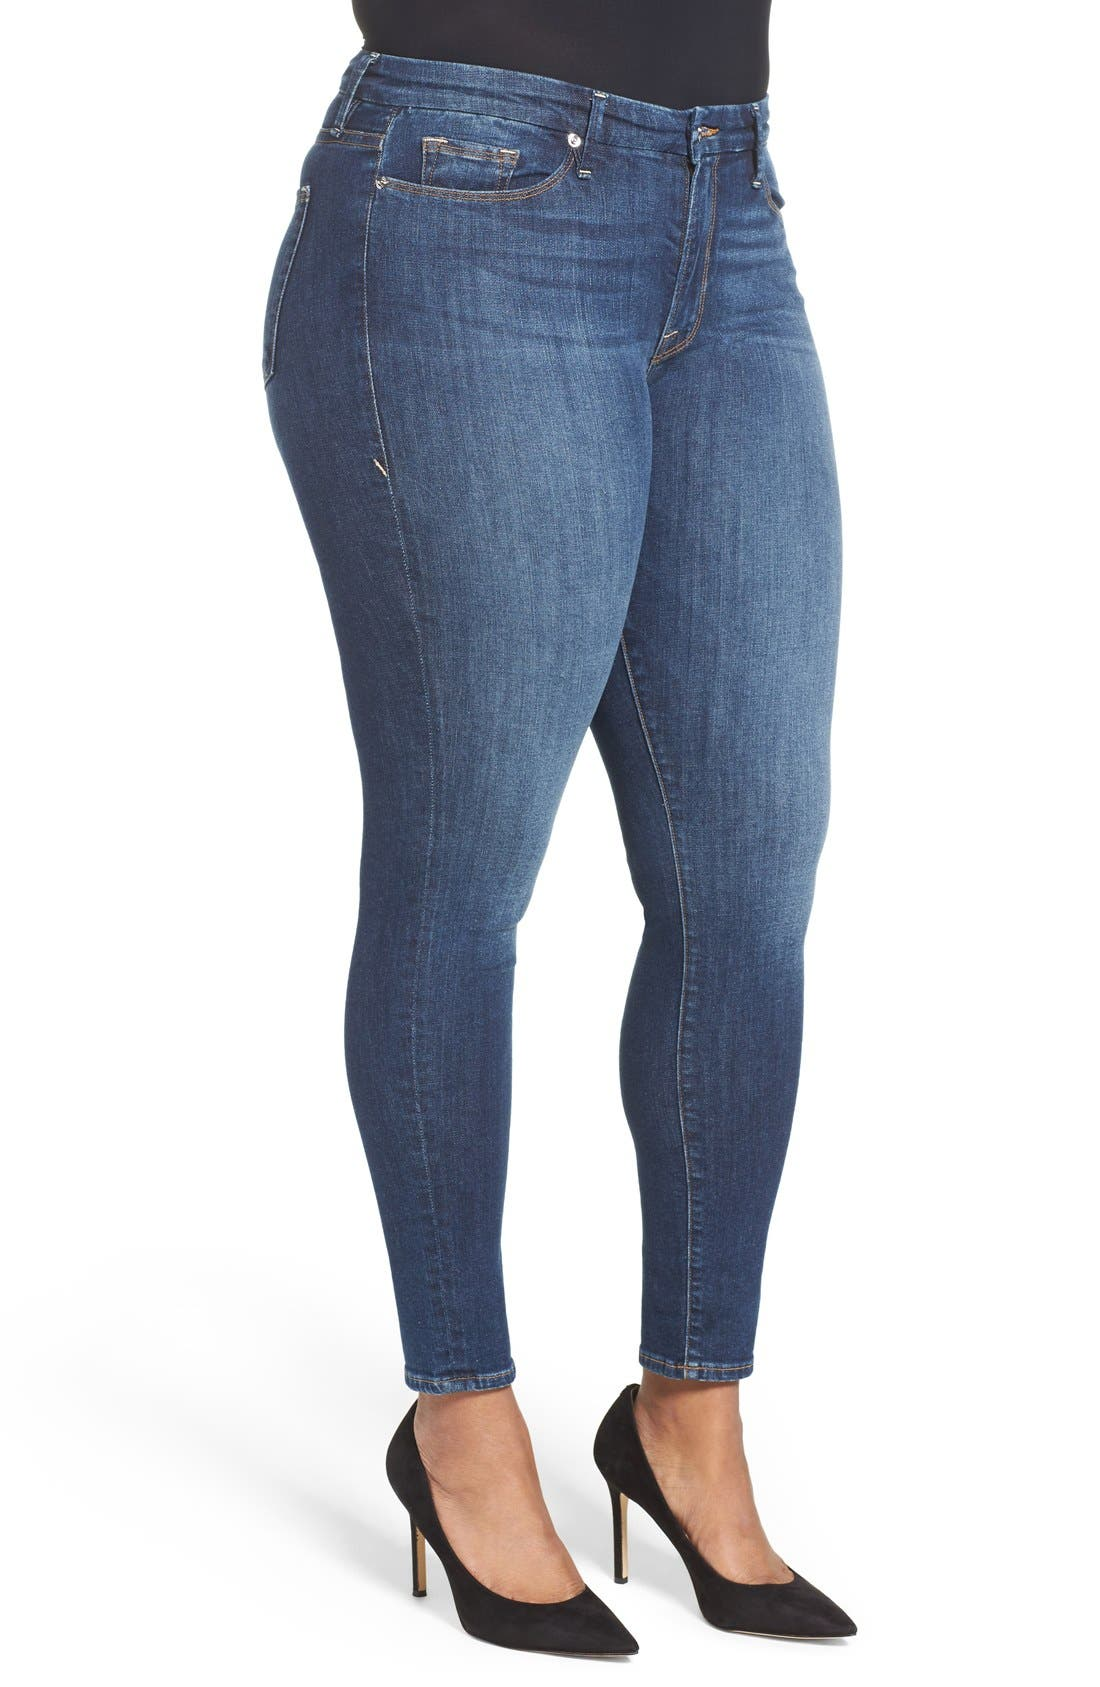 Alternate Image 3  - Good American Good Legs High Rise Skinny Jeans (Blue 004)